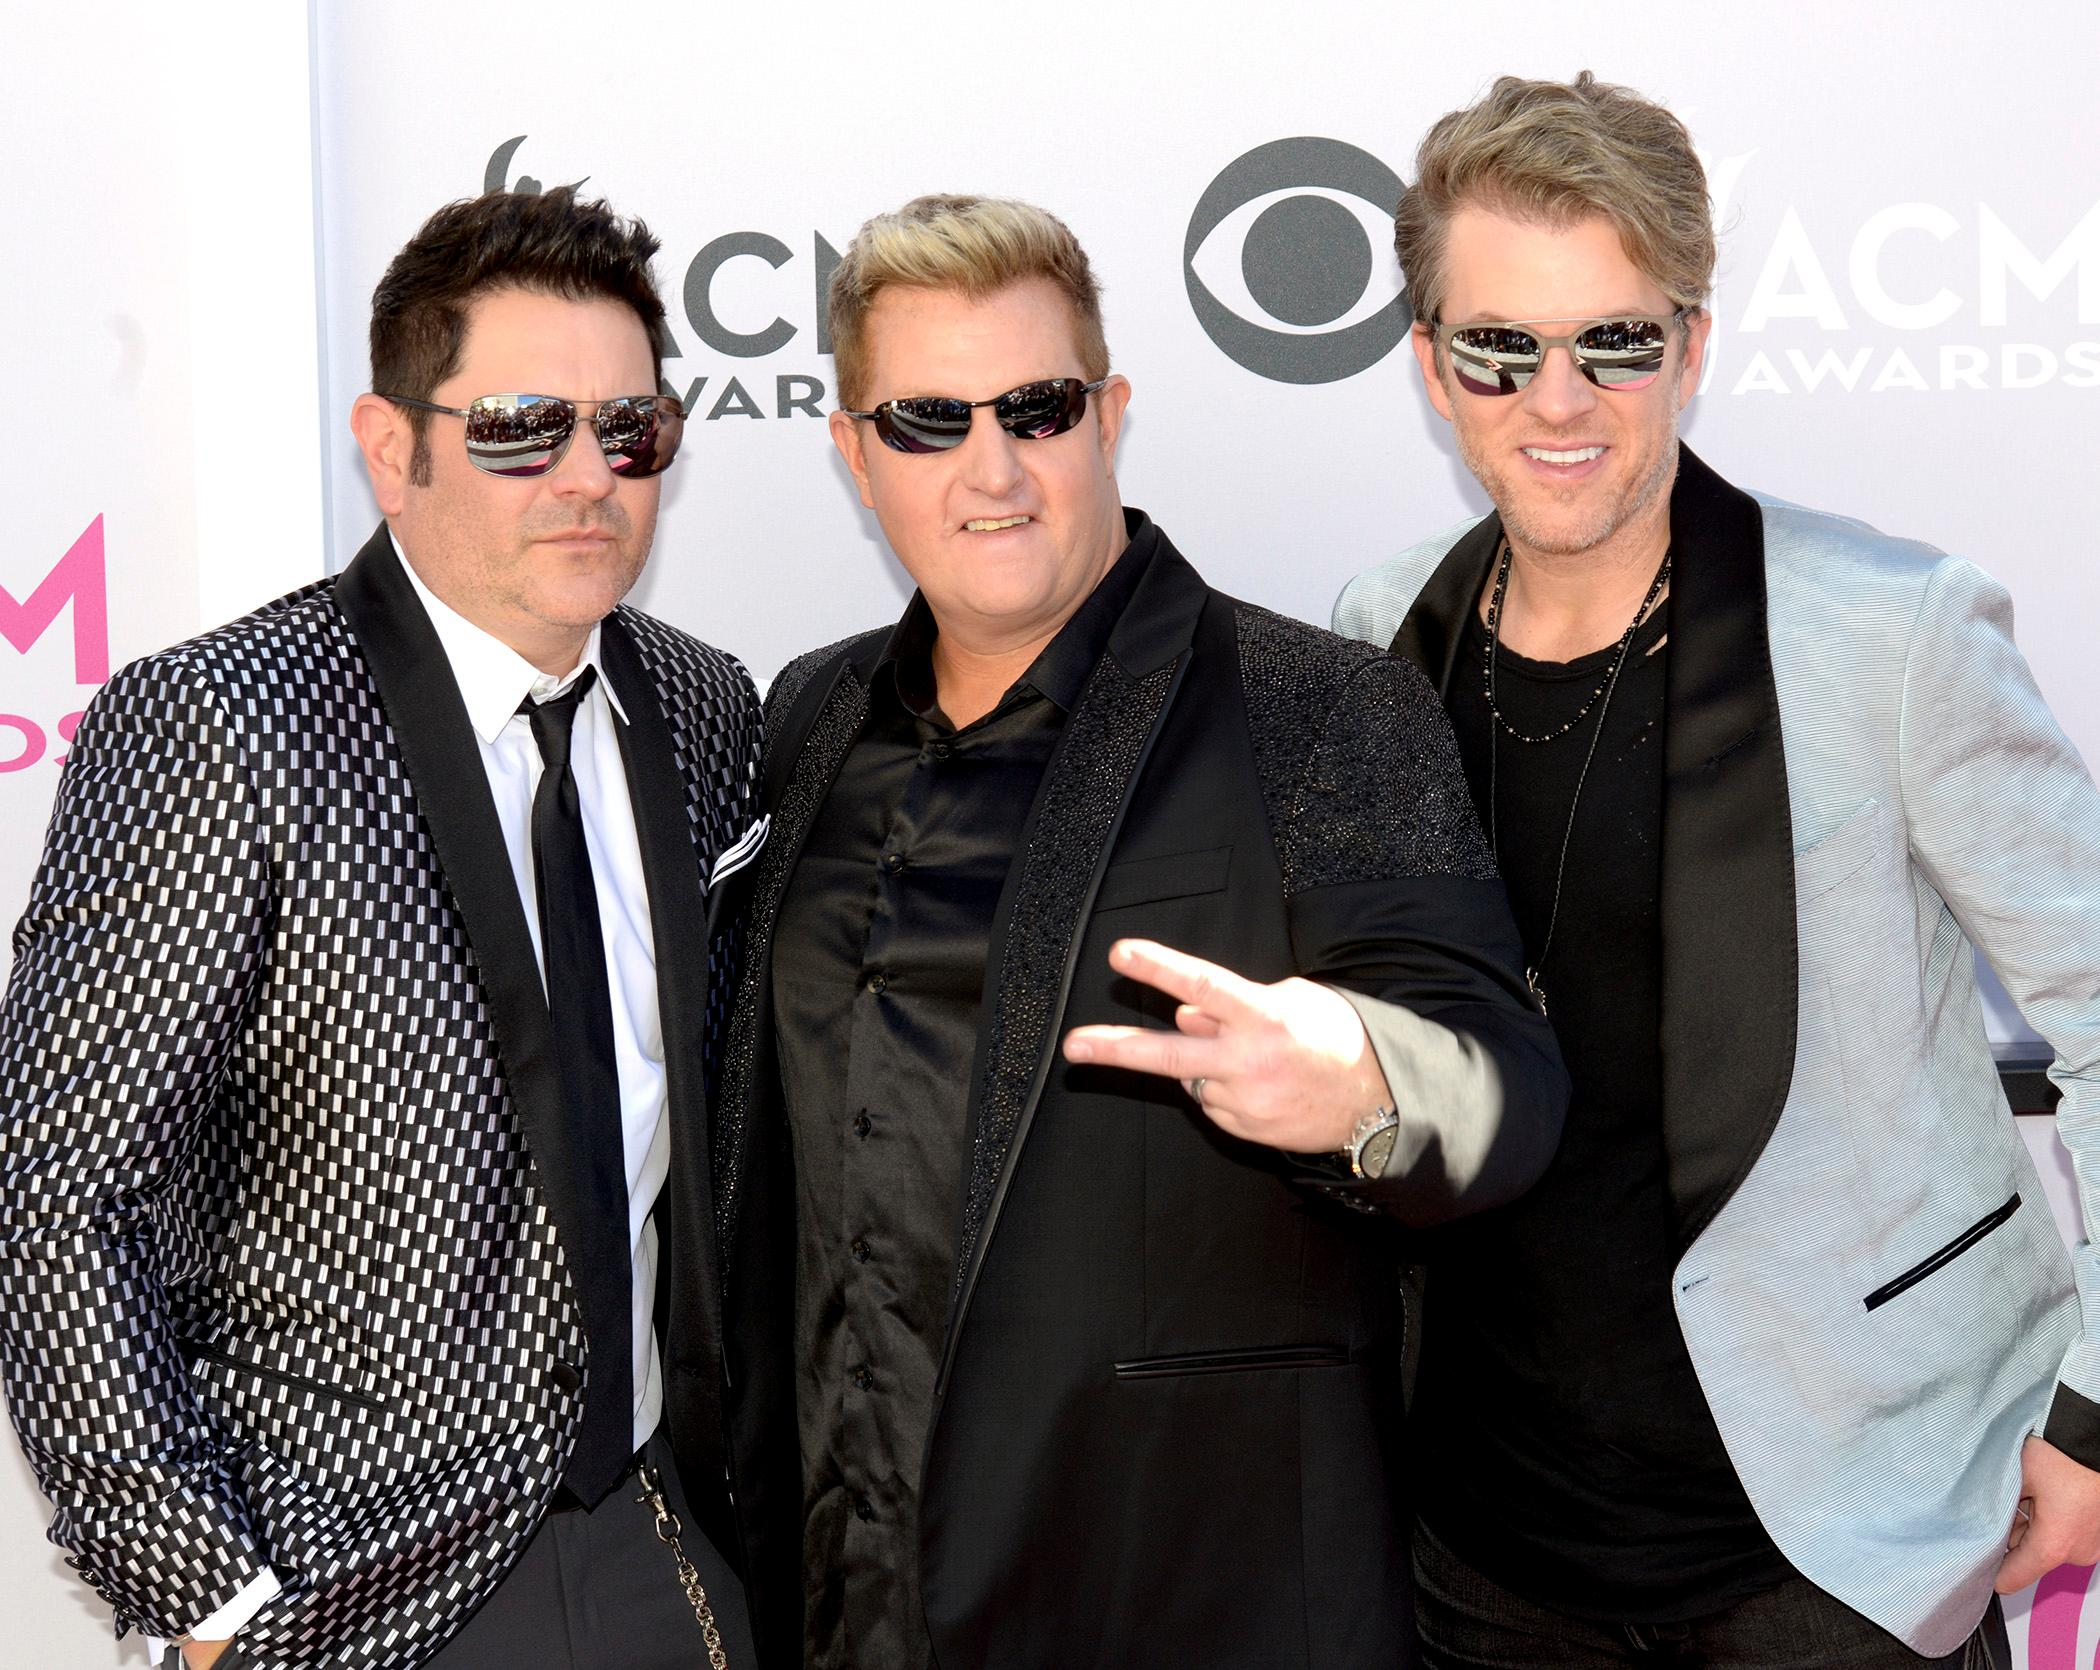 (left to right) Jay DeMarcus, Gary LeVox and Joe Don Rooney, also known as Rascal Flatts and nominee for Vocal Group of the Year walk the Academy of Country Music Awards red carpet at T-Mobile Arena. Sunday, April 2, 2017. (Glenn Pinkerton/ Las Vegas News Bureau)